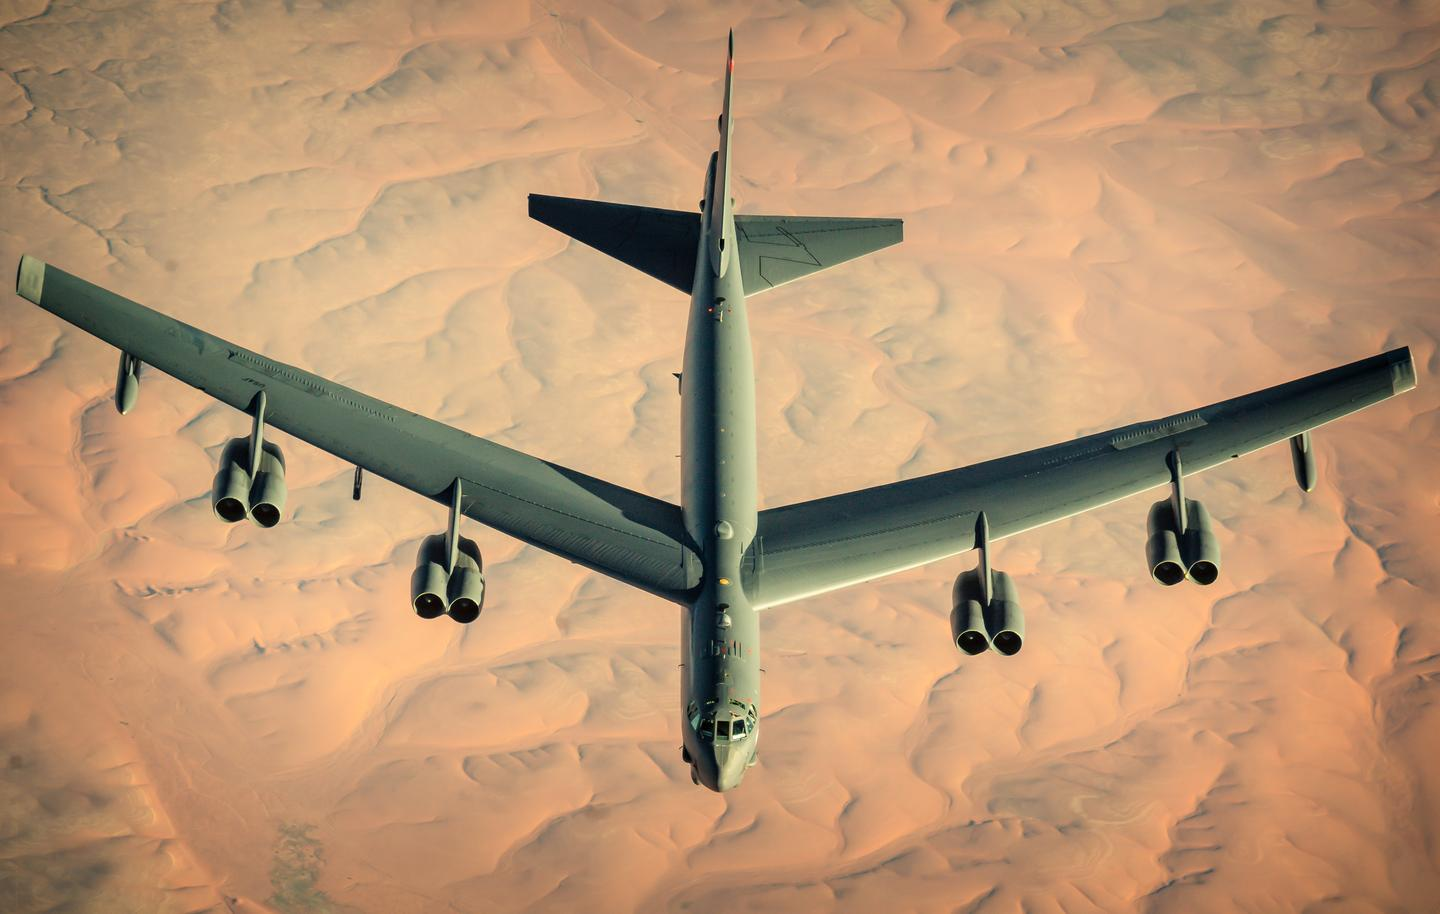 The Rolls-Royce F-130 engine will reduce in-air refueling of the B-52